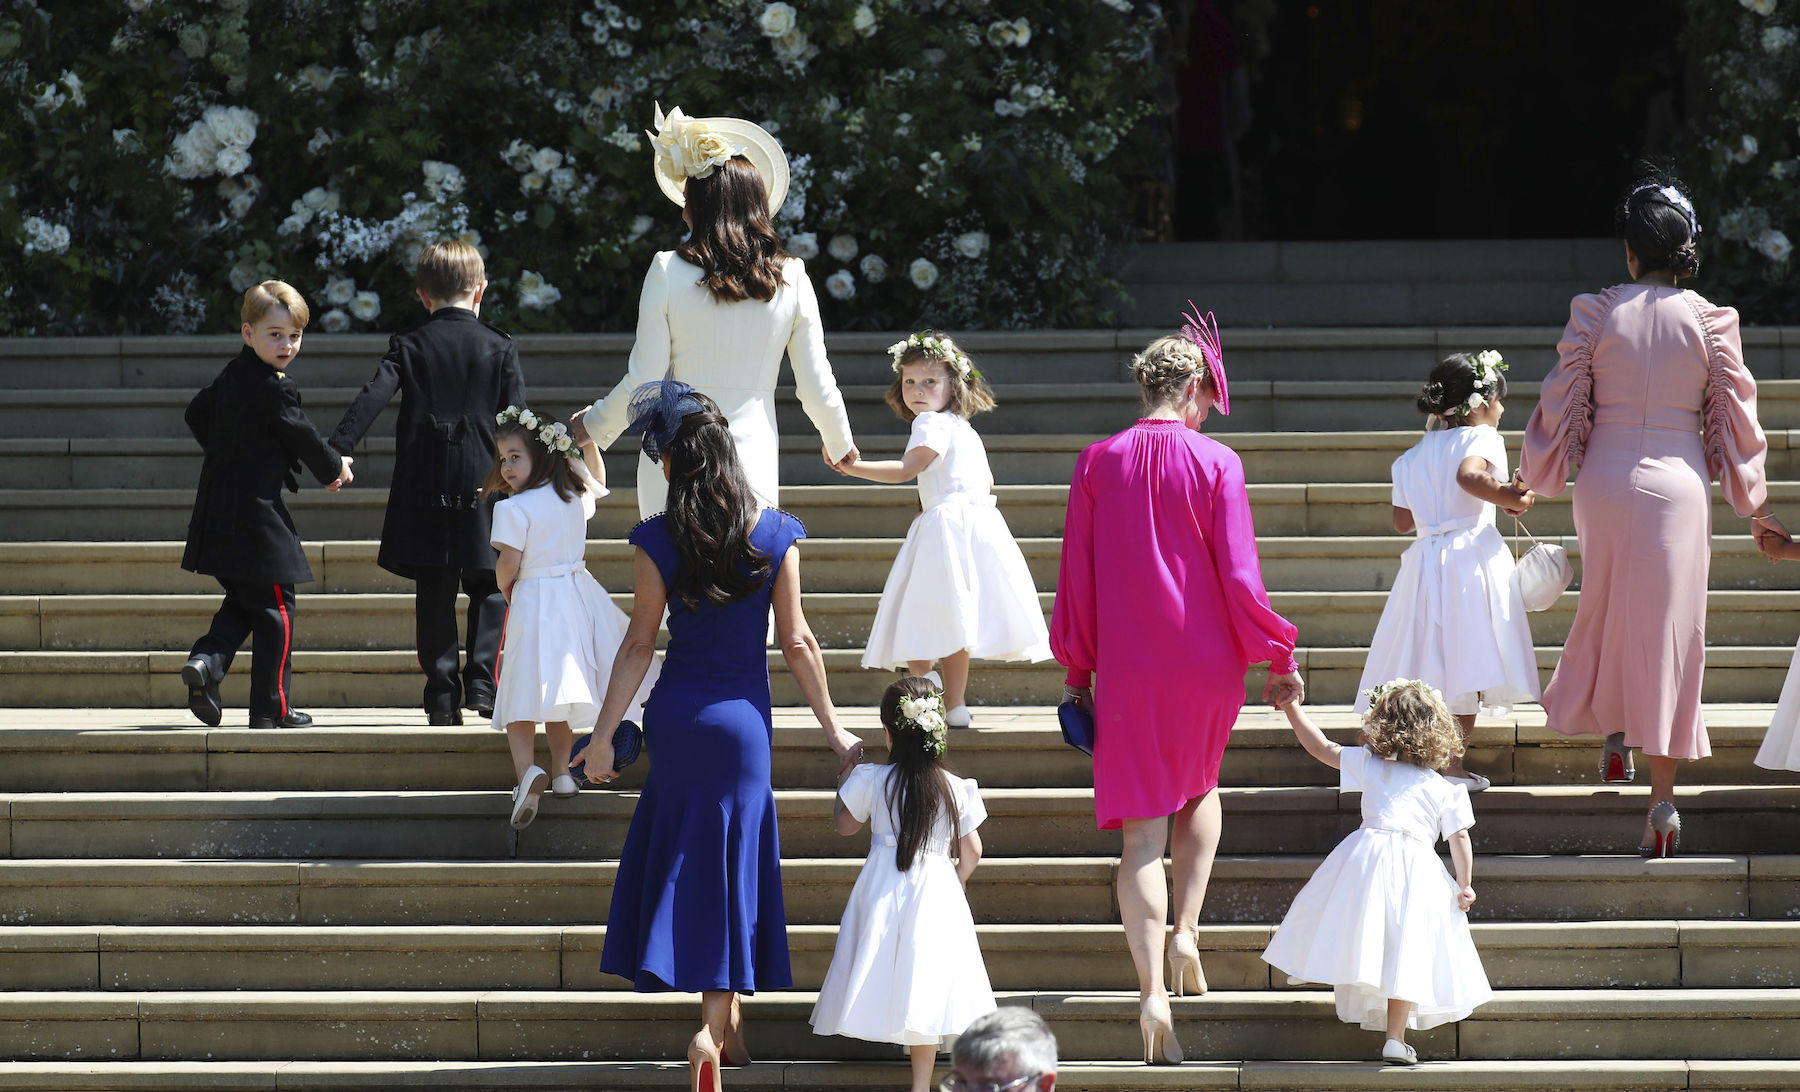 <div class='meta'><div class='origin-logo' data-origin='AP'></div><span class='caption-text' data-credit='Jane Barlow/pool photo via AP'>Prince George, Princess Charlotte, Kate, the Duchess of Cambridge and Jessica Mulroney arrive with the bridesmaids and page boys.</span></div>